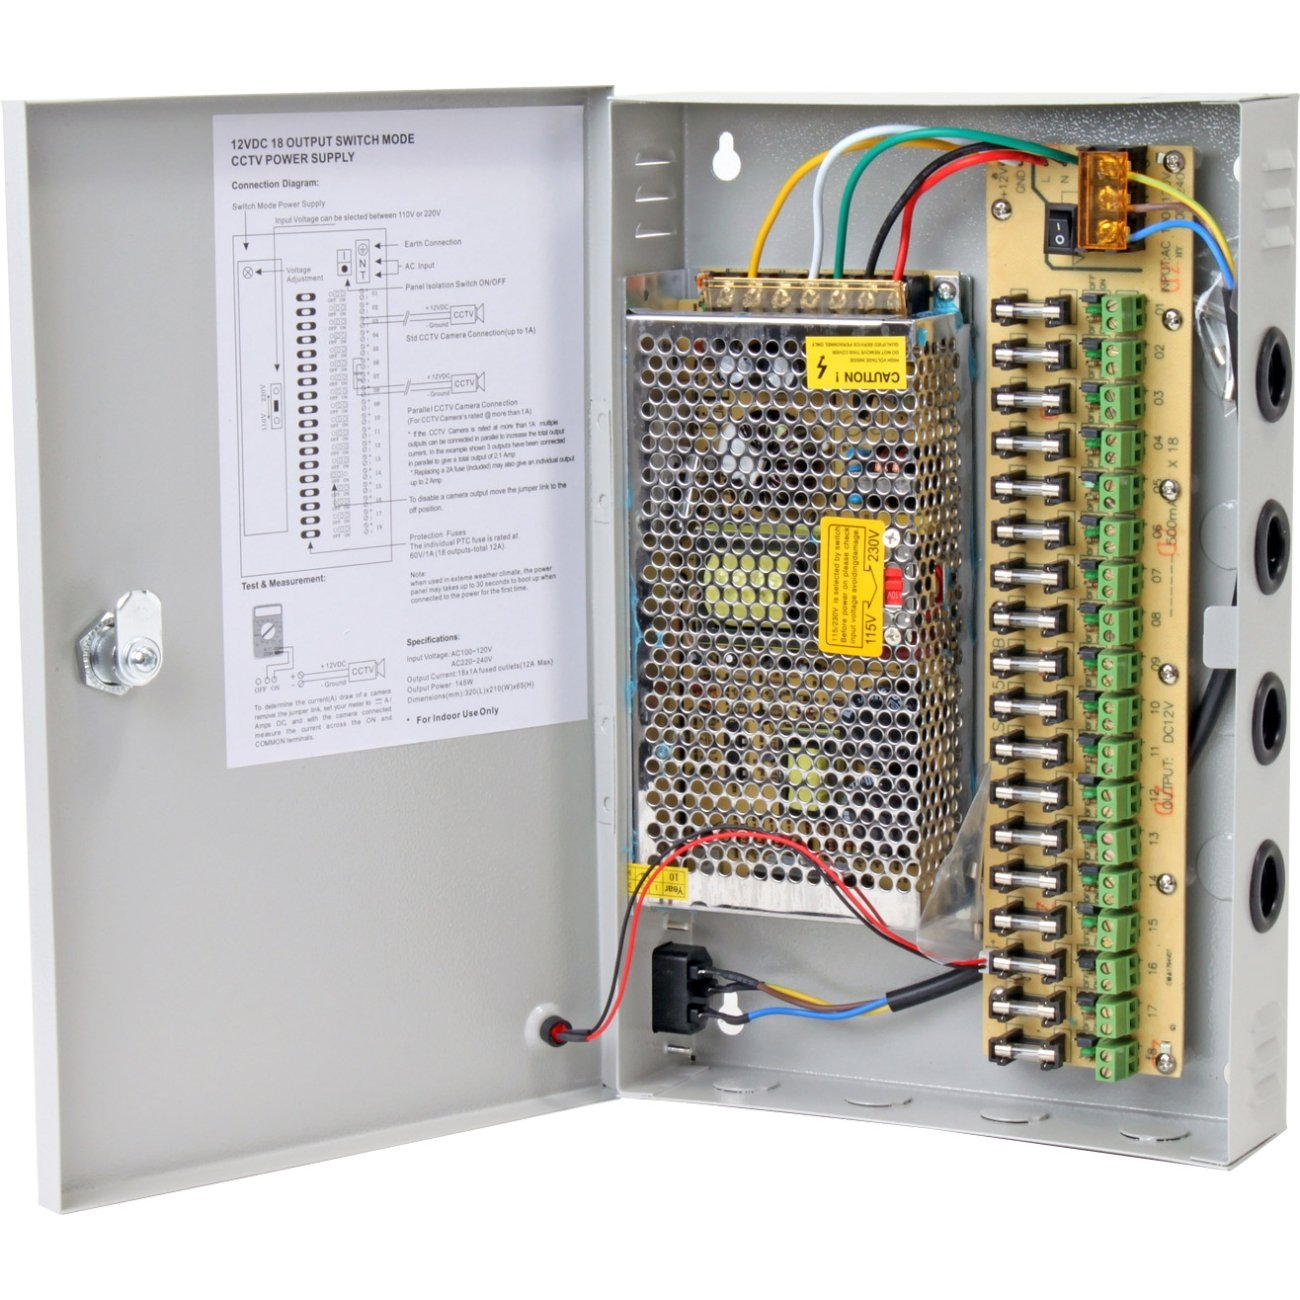 Amazon.com : Q-See QS1018 12 Volt 12 AMP Power Distribution Panel Connects  18 Cameras : Power Distribution Units : Camera & Photo